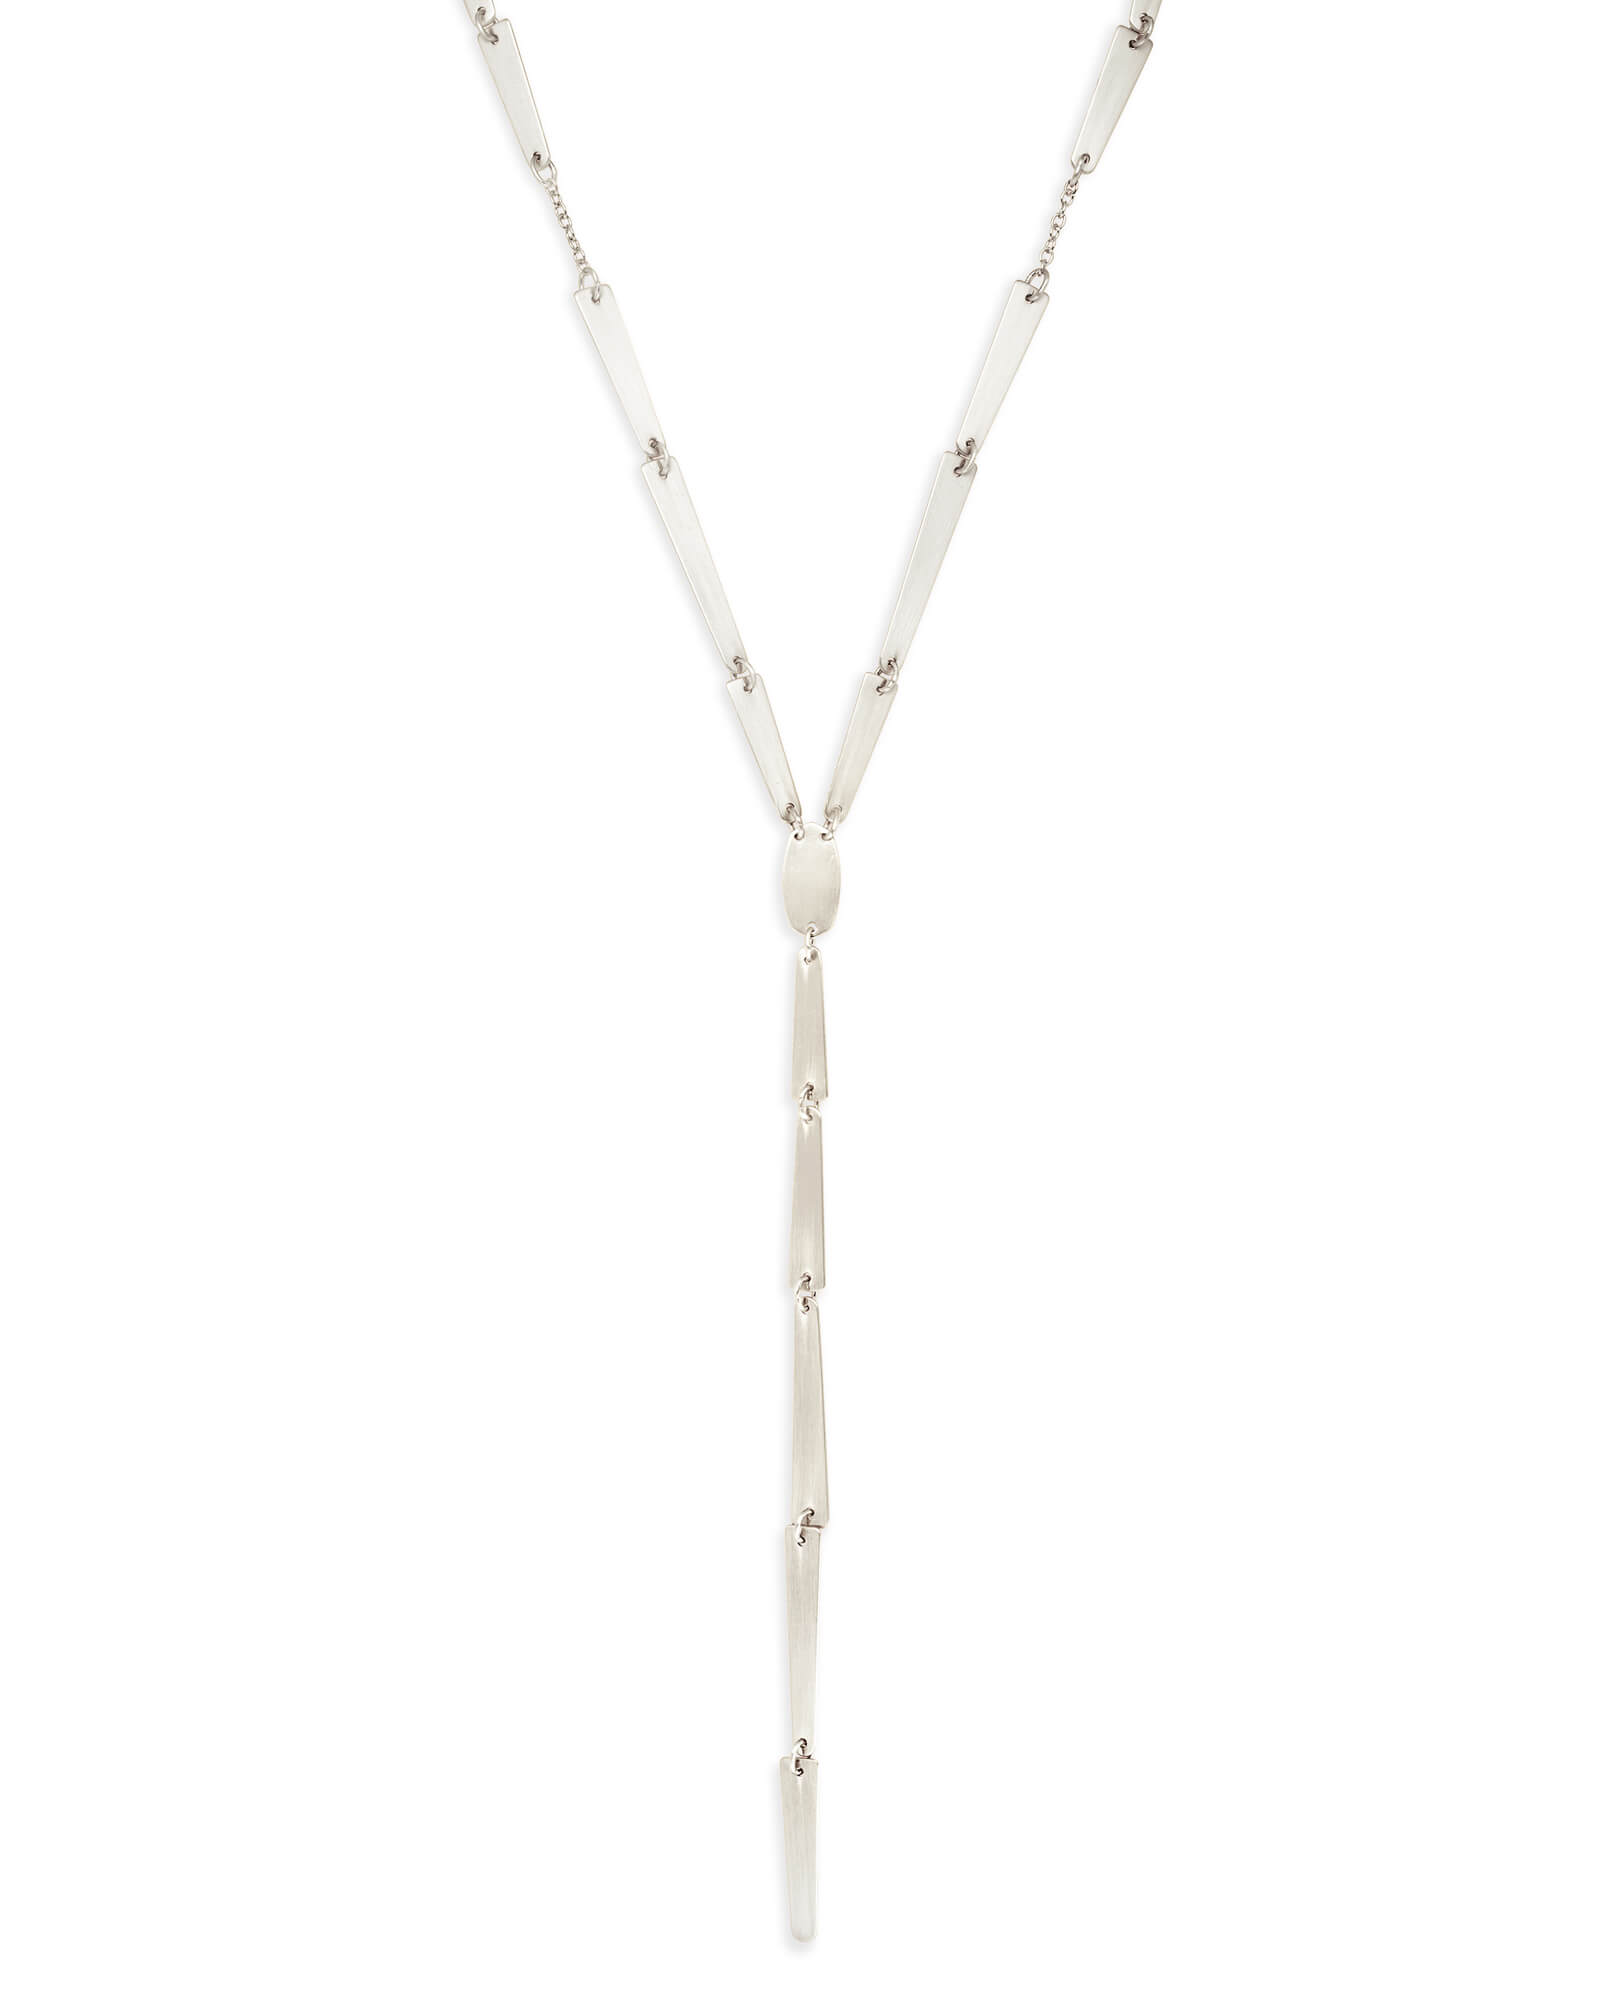 Gail Y Necklace in Silver